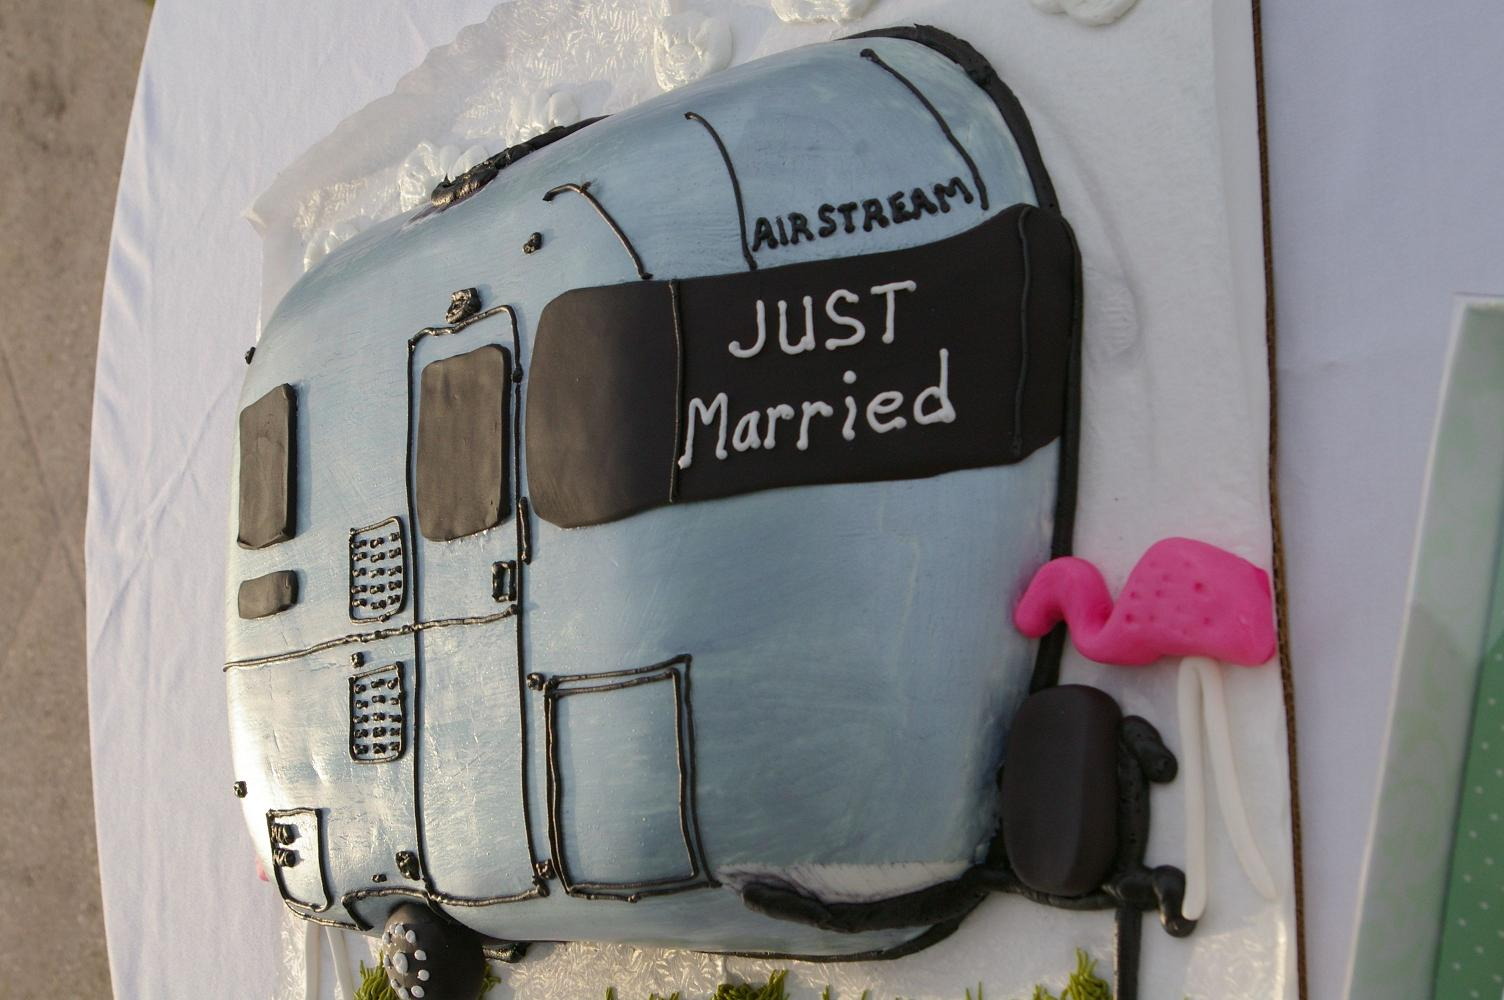 Click image for larger version  Name:Airstream 2.JPG Views:185 Size:143.8 KB ID:108556